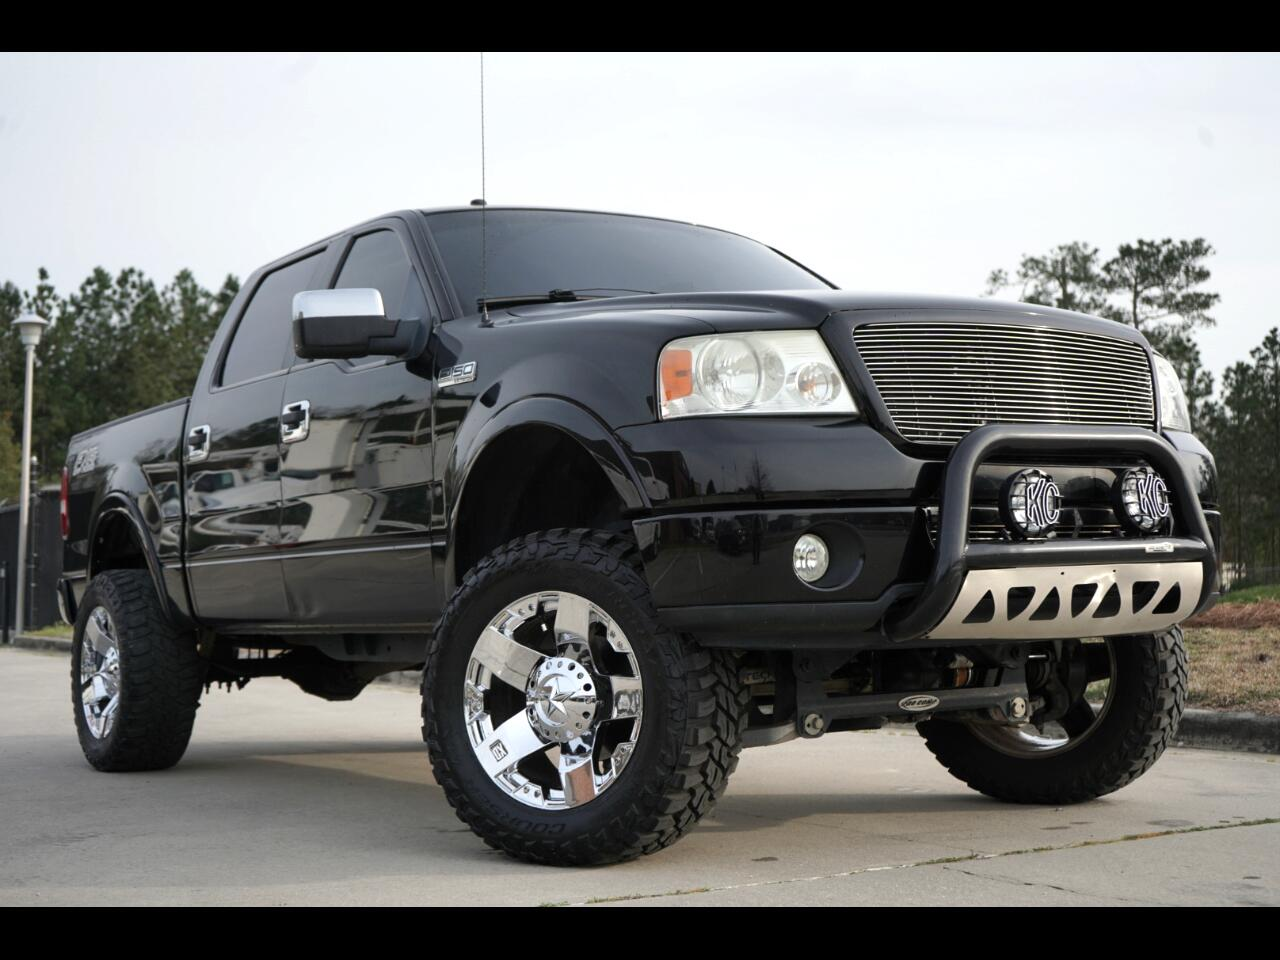 2008 Ford F-150 4wd Lifted FX4 Leather XD